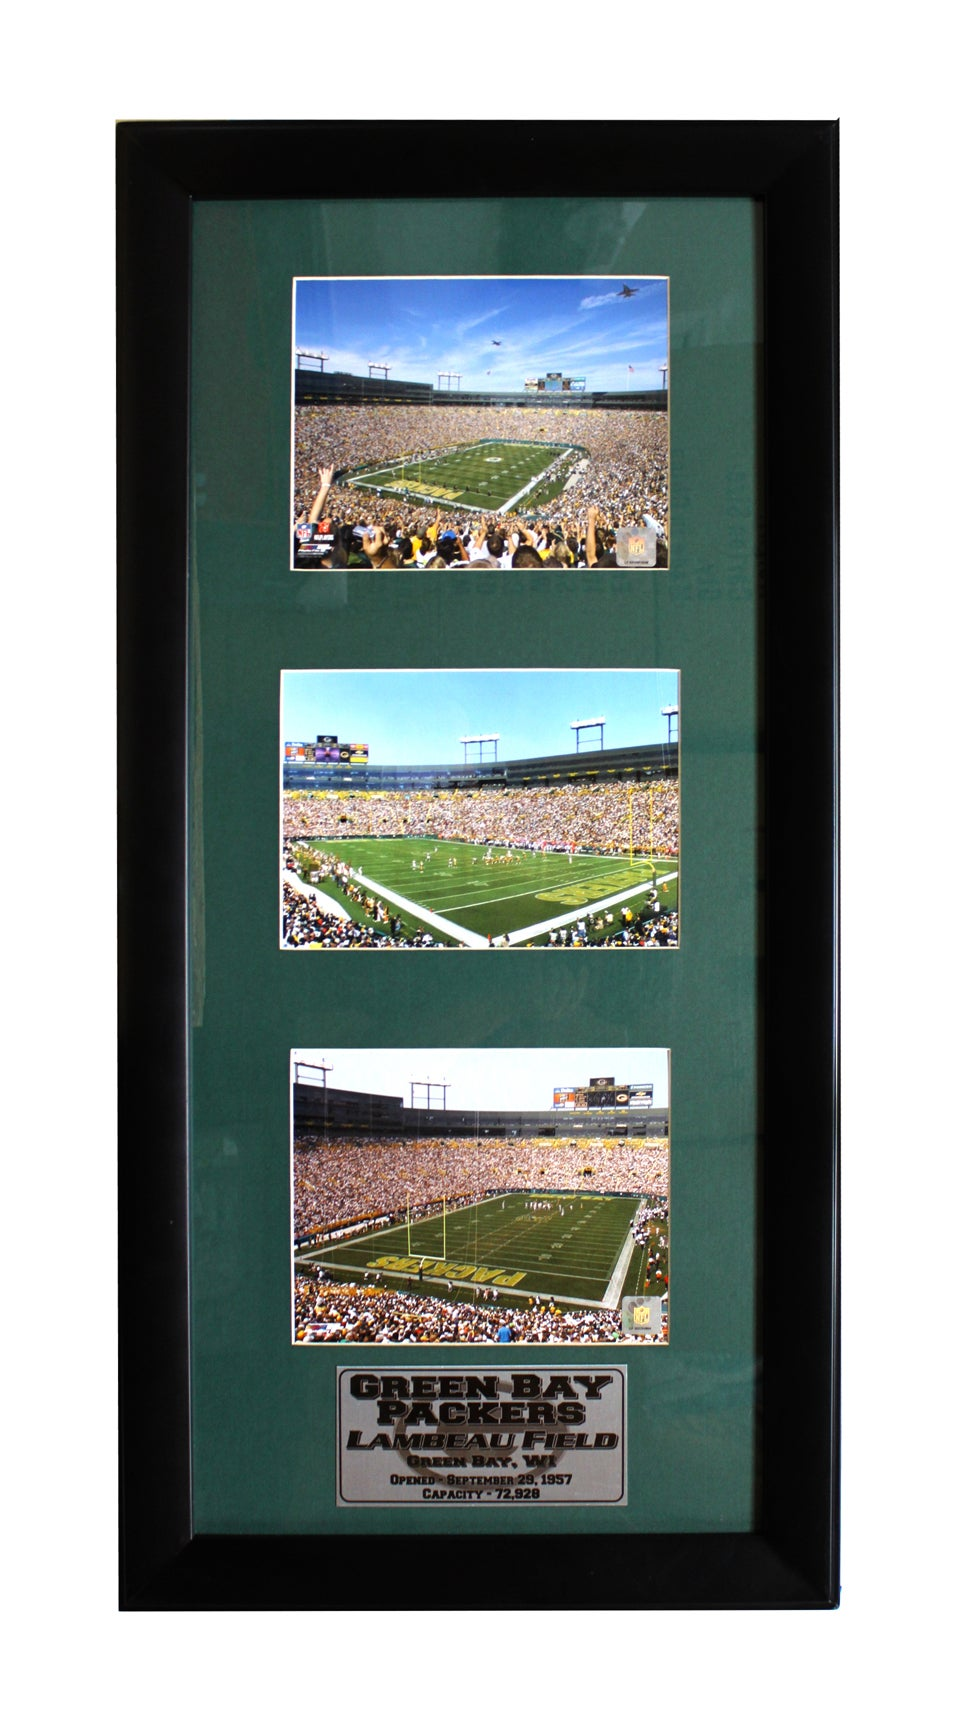 Green Bay Packers Lambeau Field Three-Photo Frame